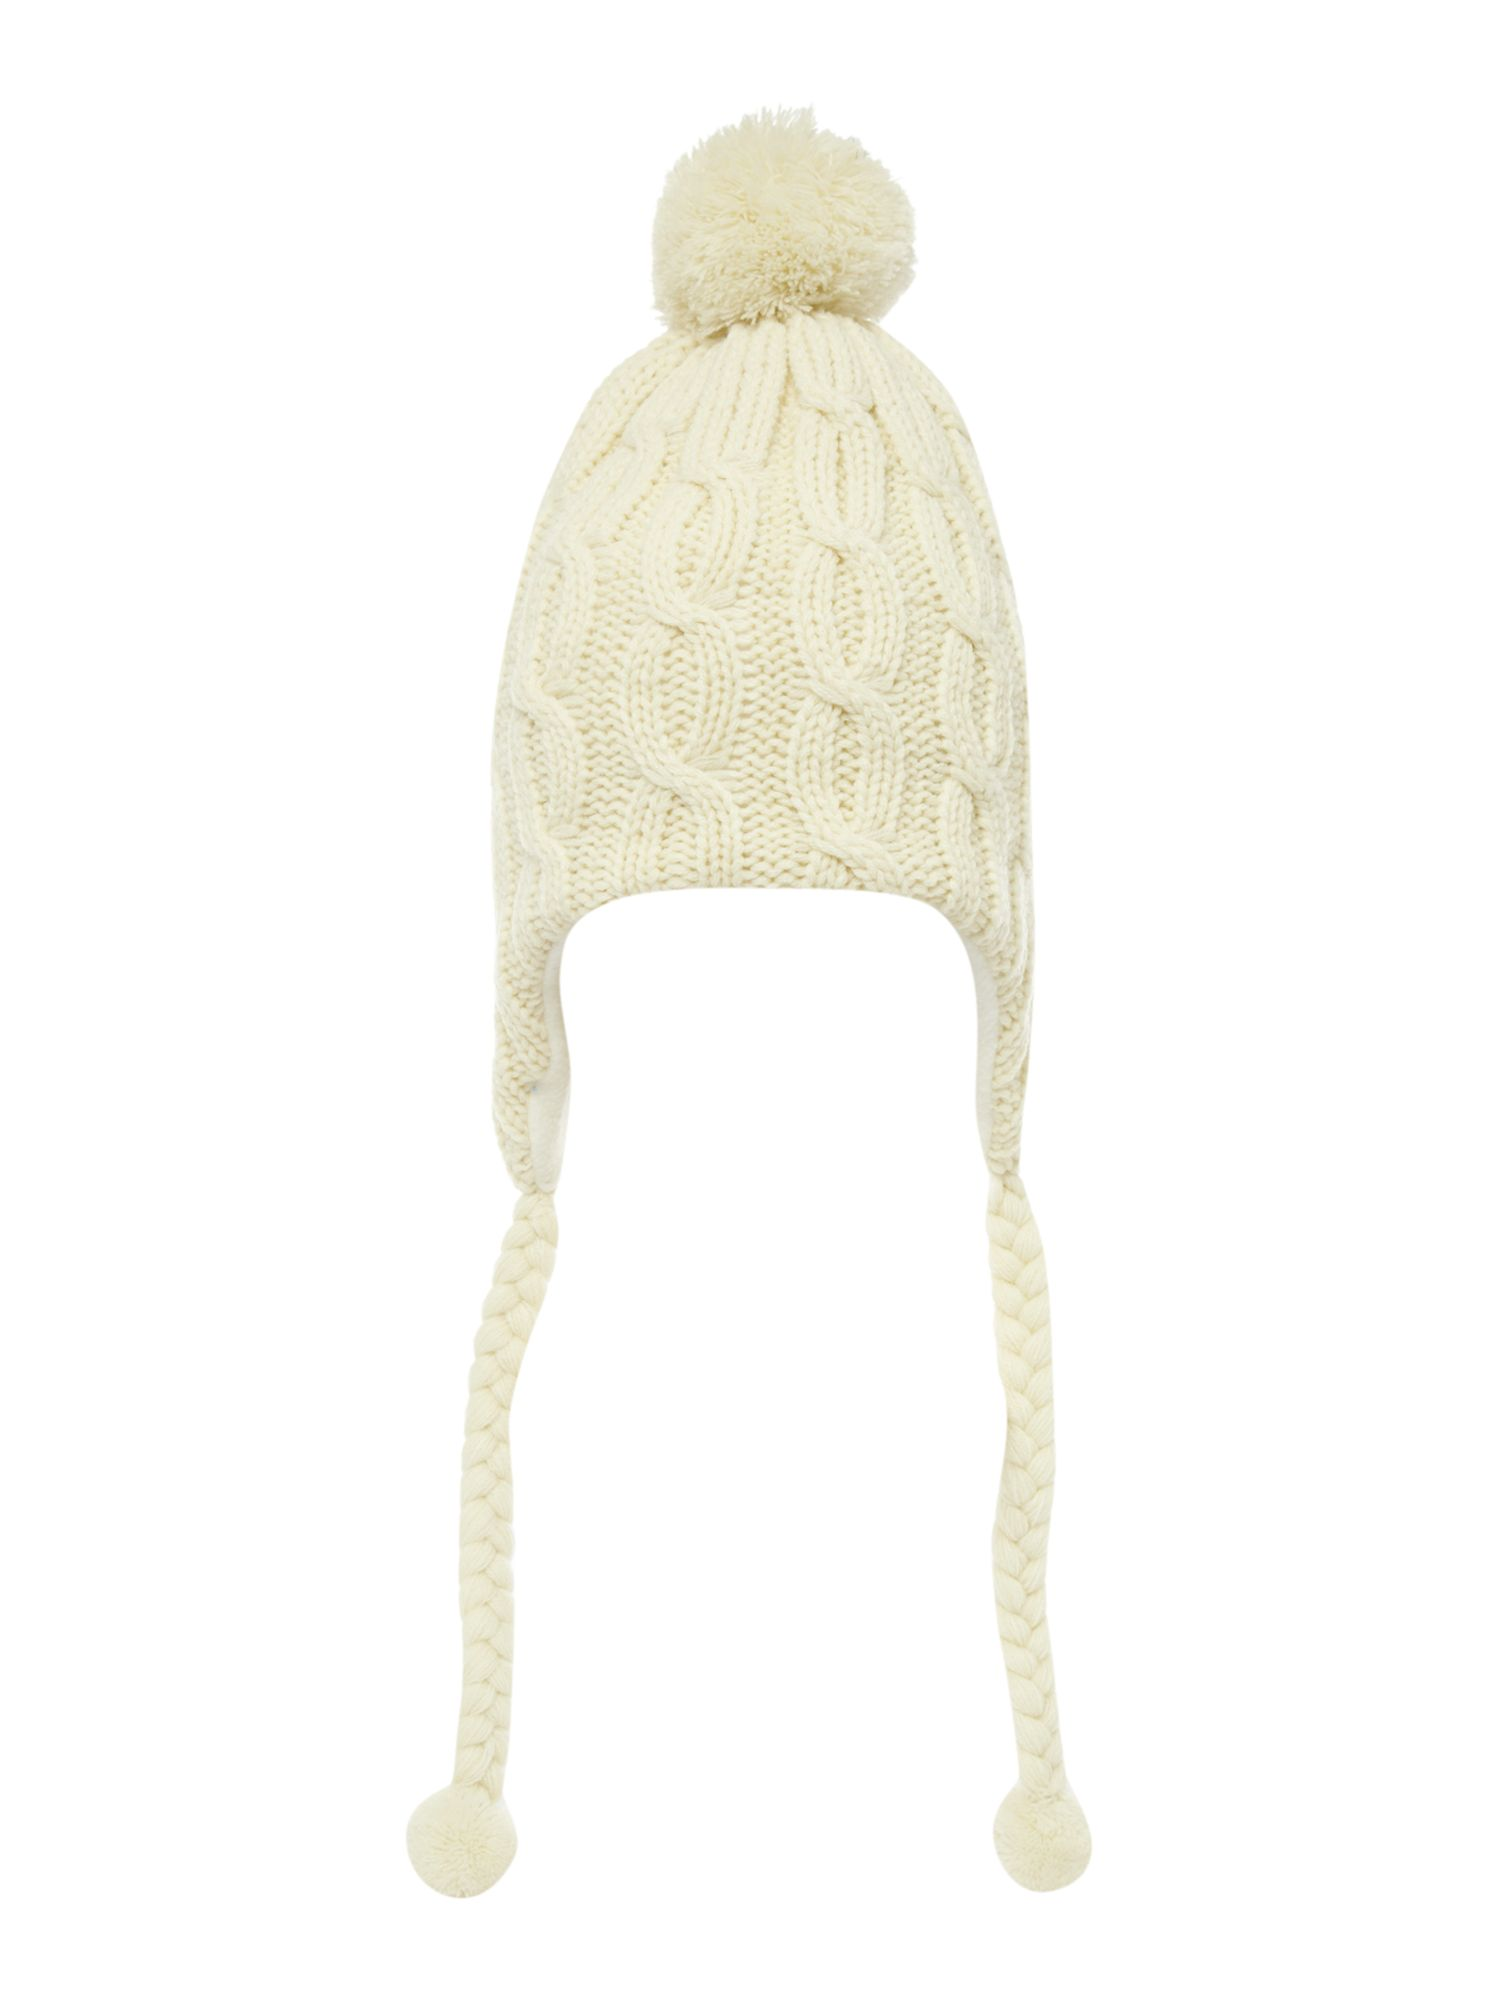 Cable knit headphone hat